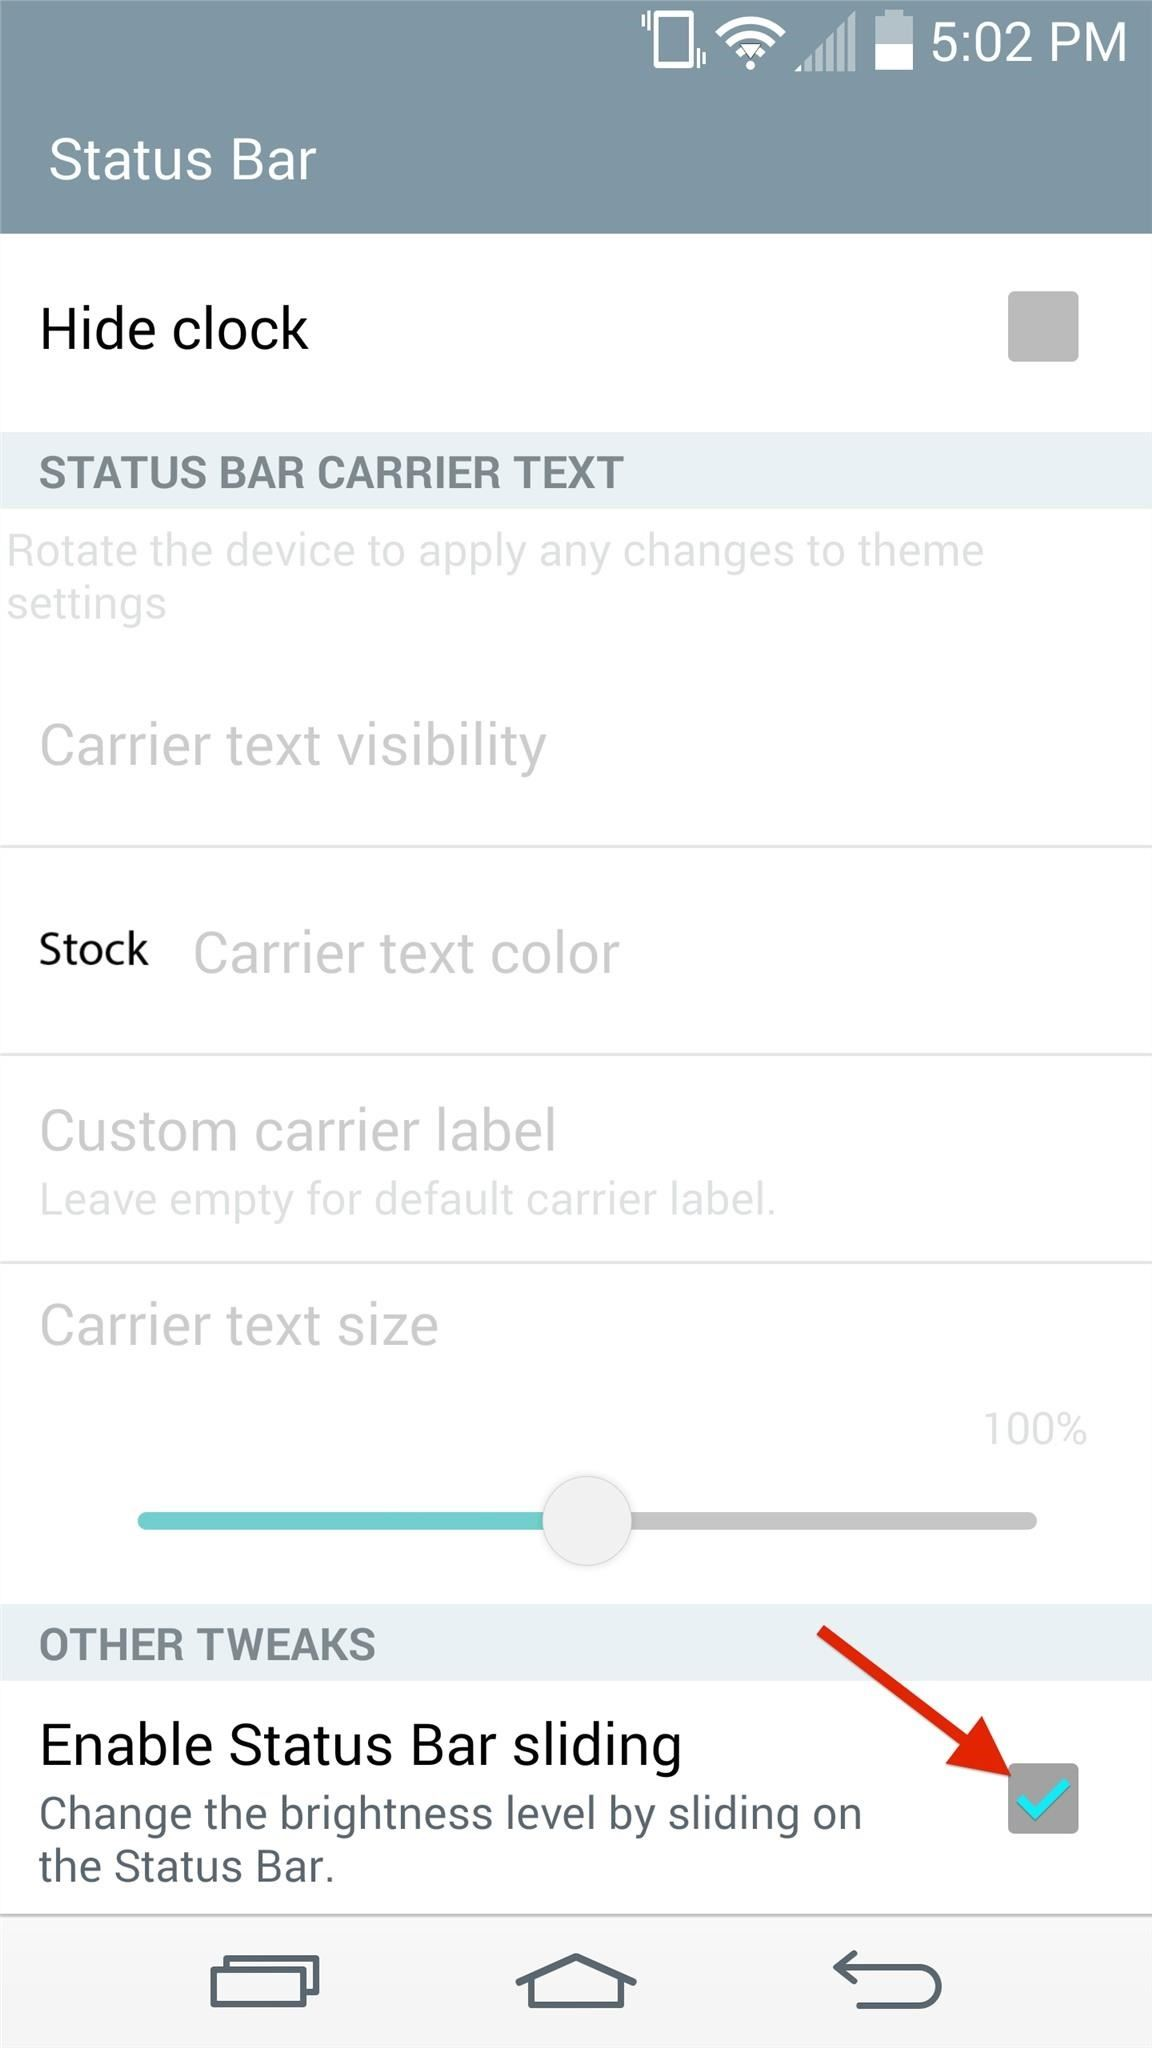 Turn Your G3's Status Bar into a Brightness Slider